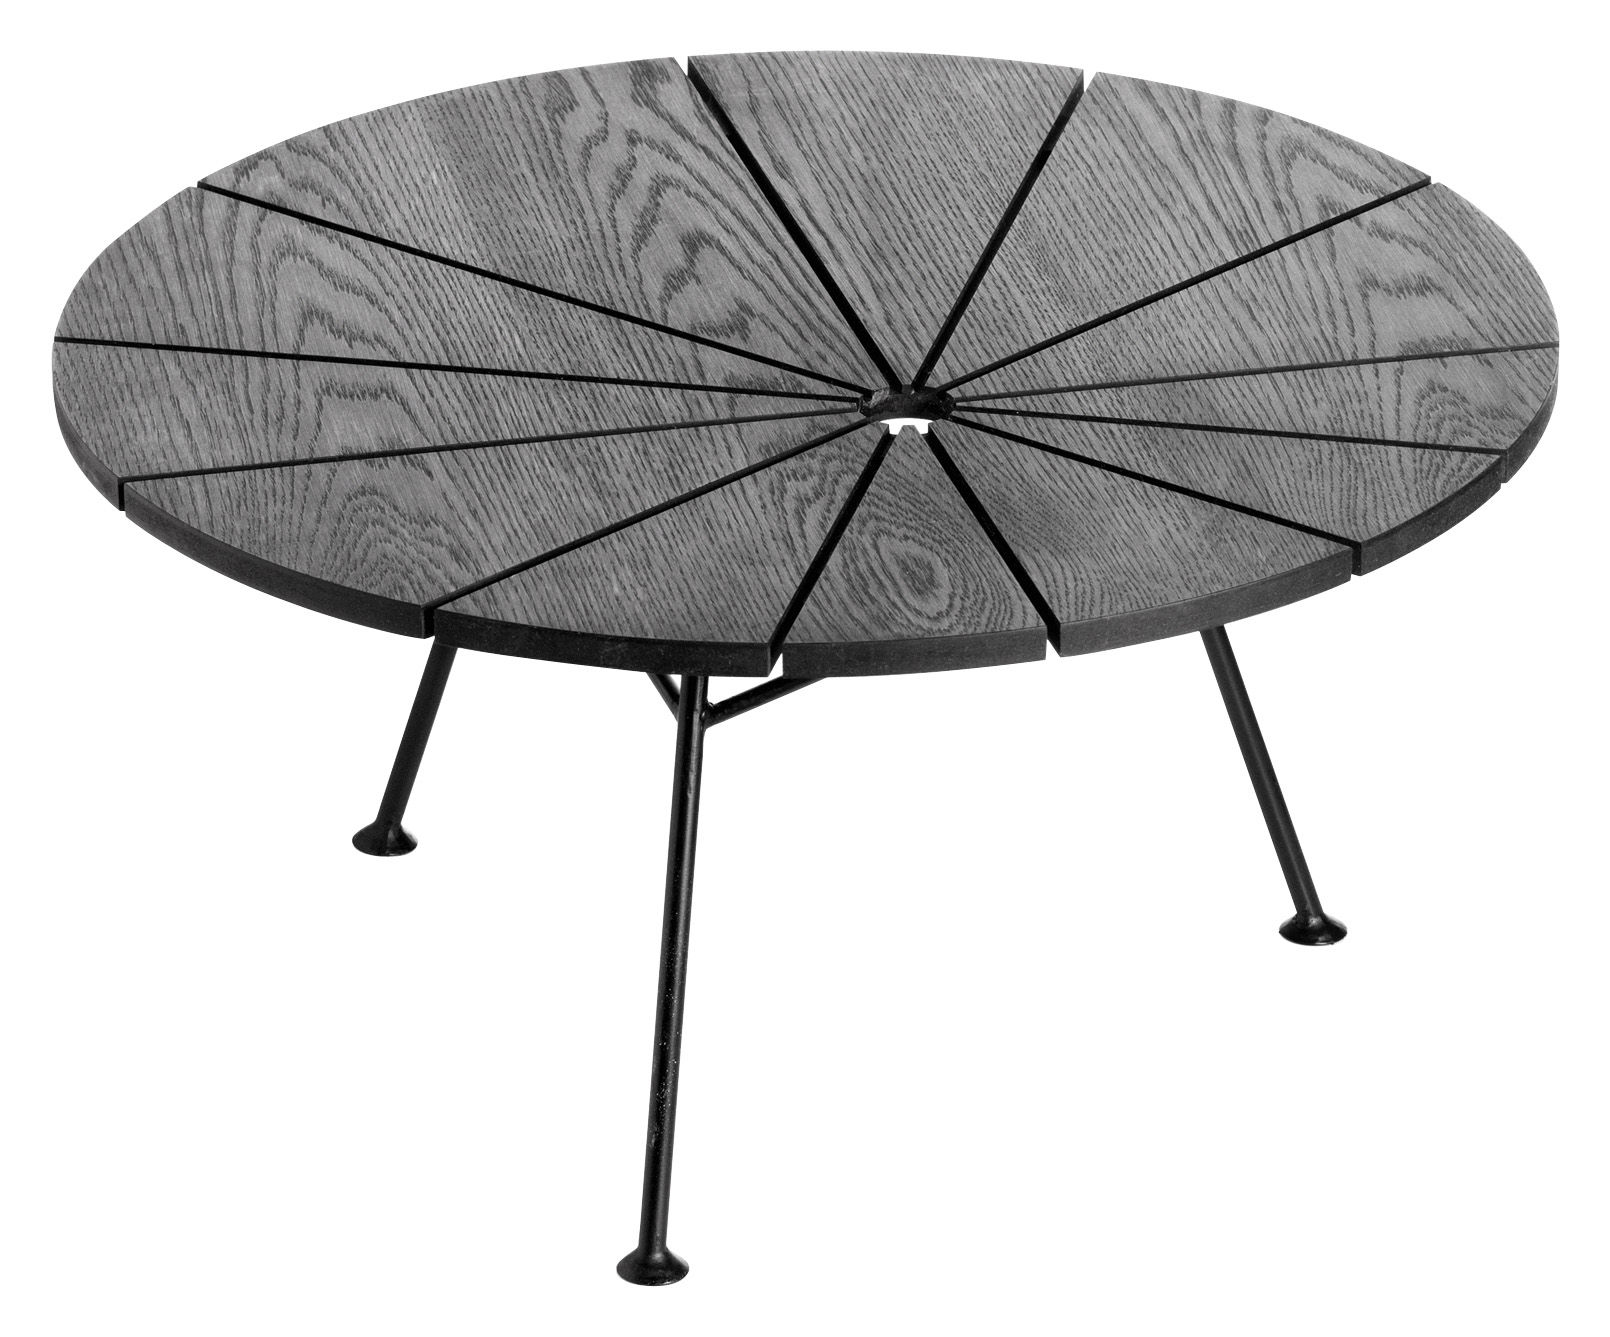 Bam bam coffee table 70 cm black by ok design pour for Coffee table 70 x 70